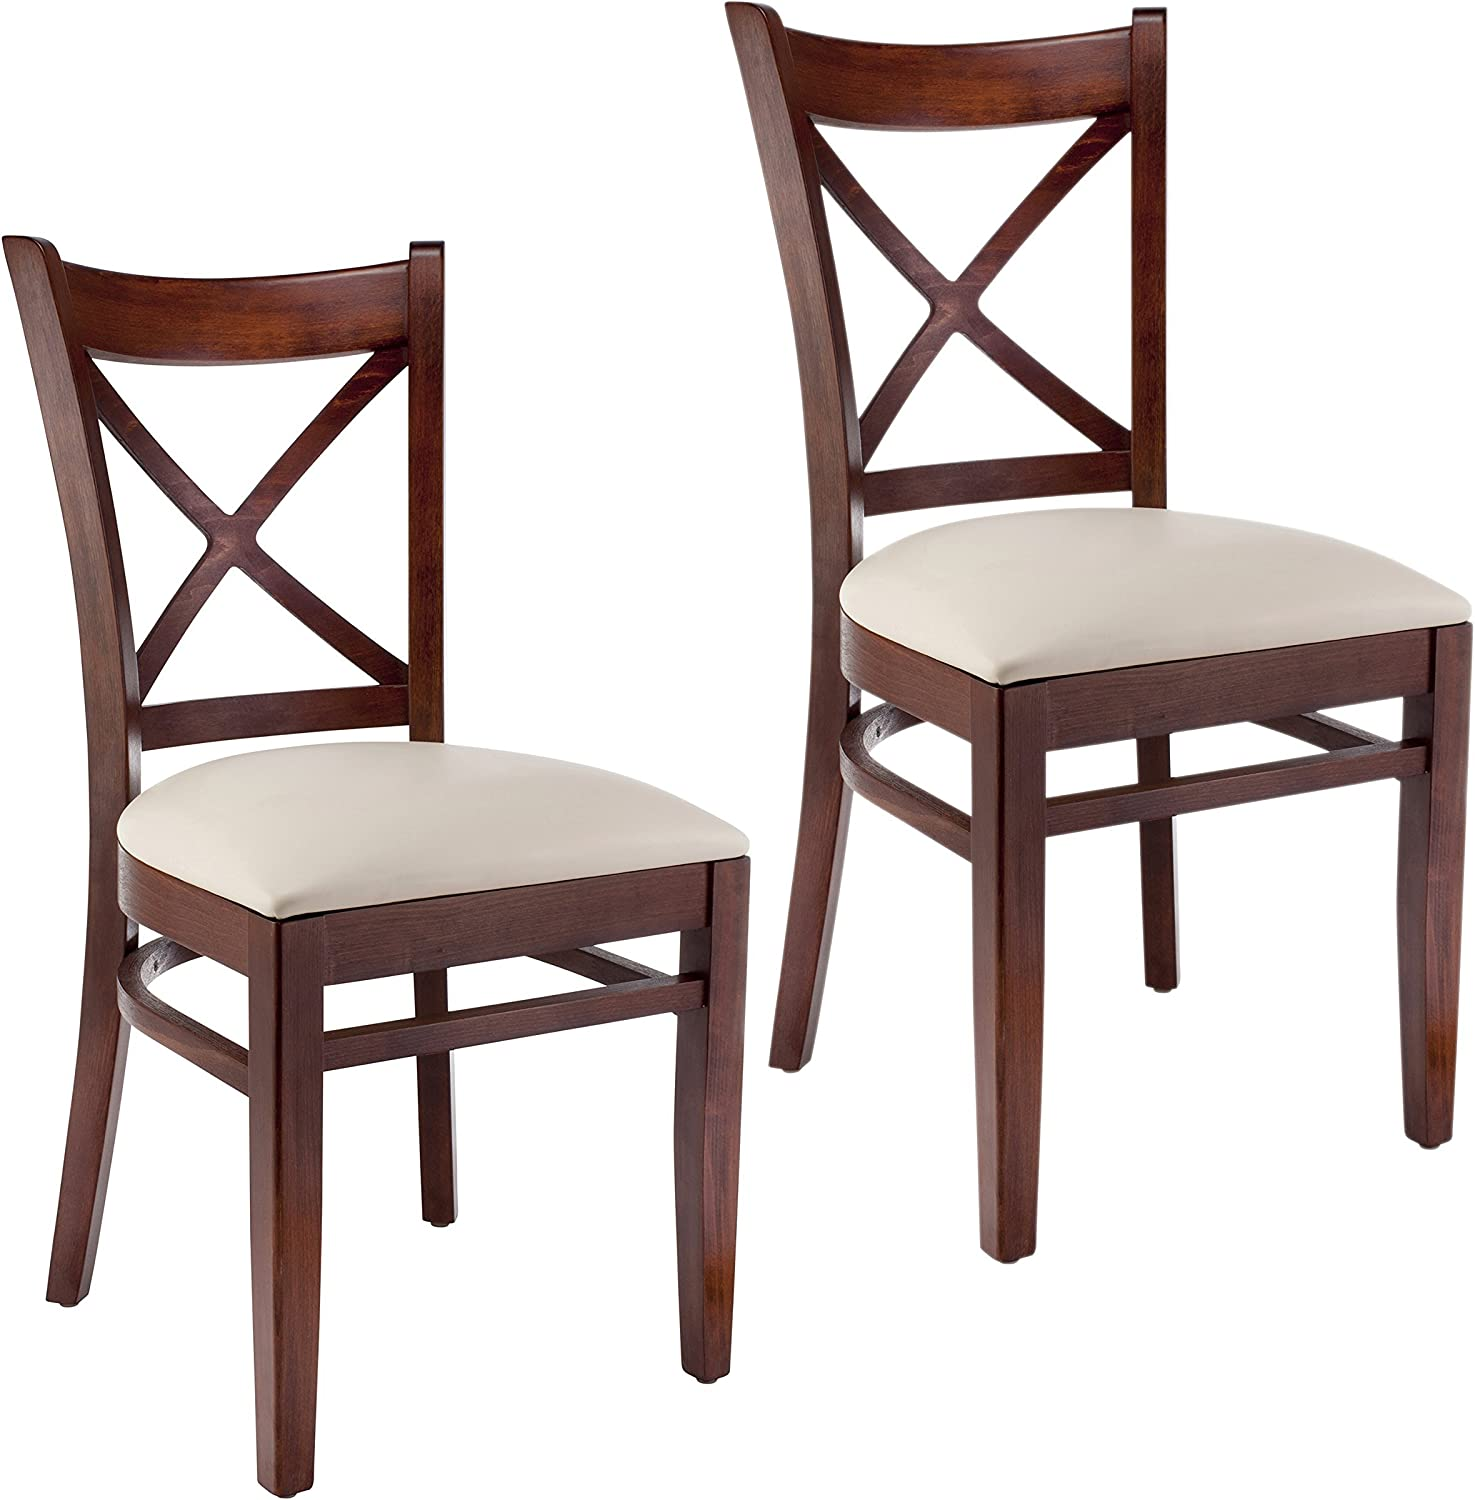 Beechwood Mountain BSD-106S-Mo Solid Beech Wood Side Chairs in Medium Oak for Kitchen Dining, Set of 2, NA